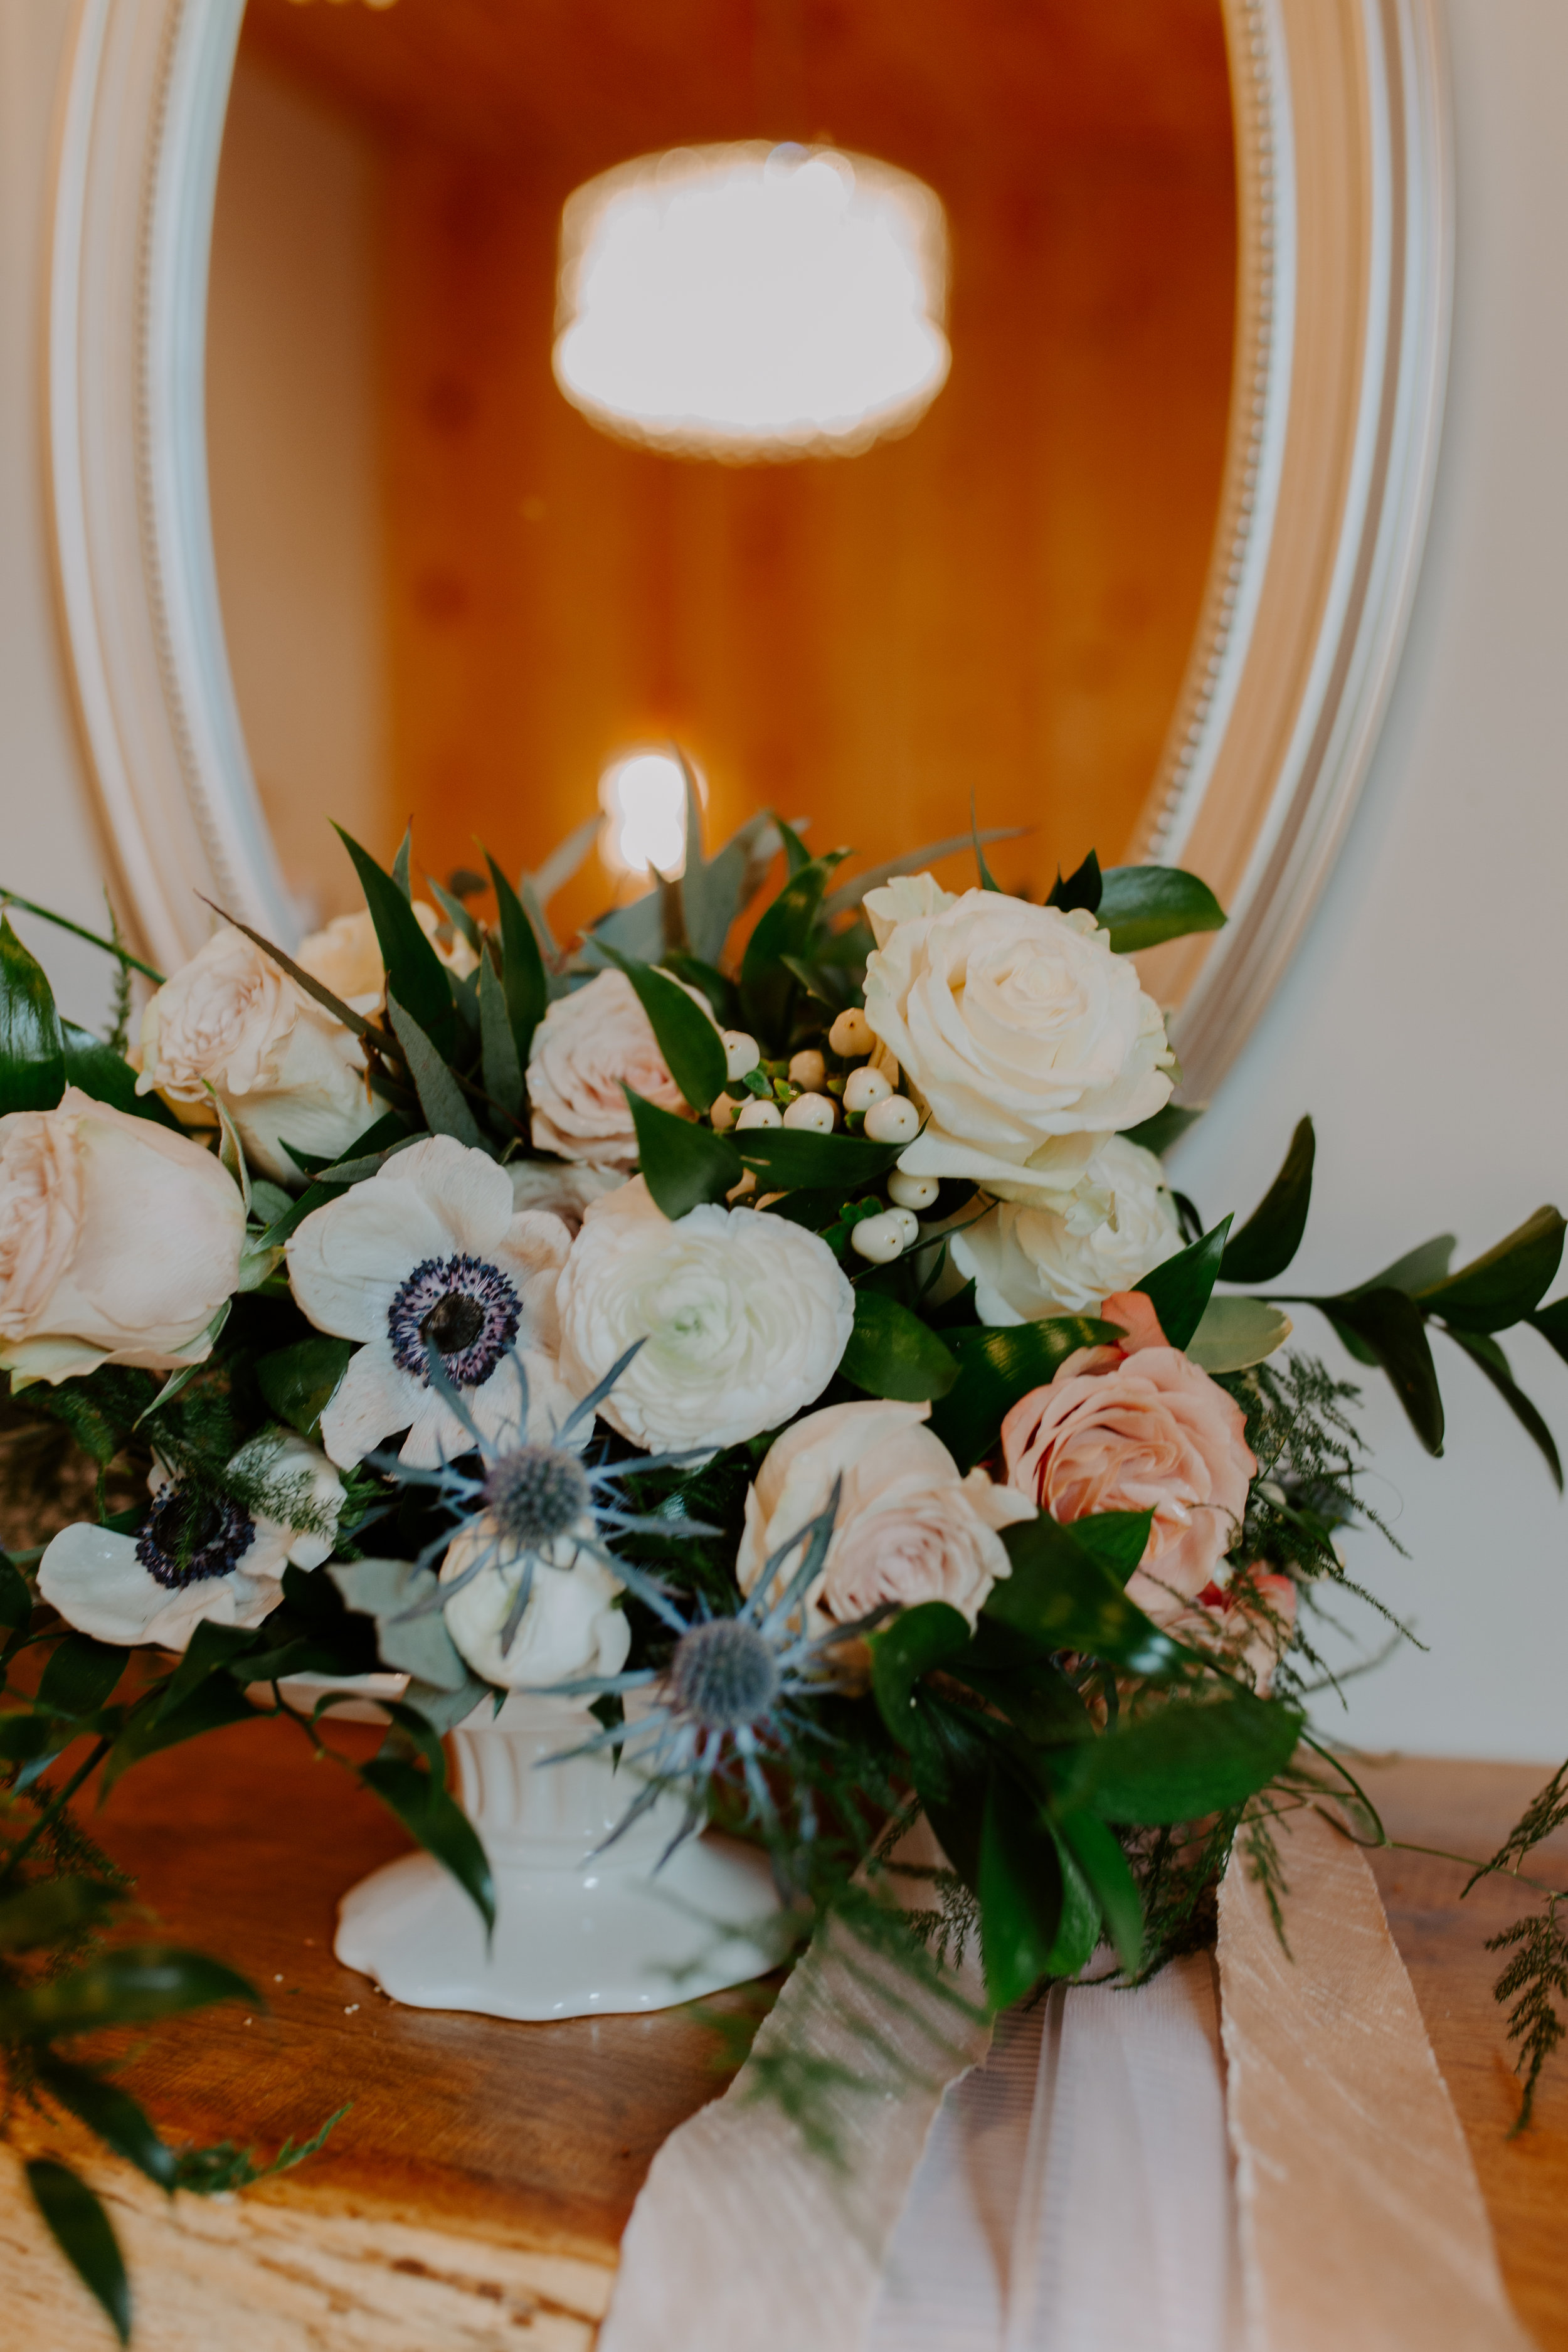 Bride Bouquet by Lavender Blue Floral, with anemones and blush roses in the bridal suite at Country Lane Lodge in Iowa